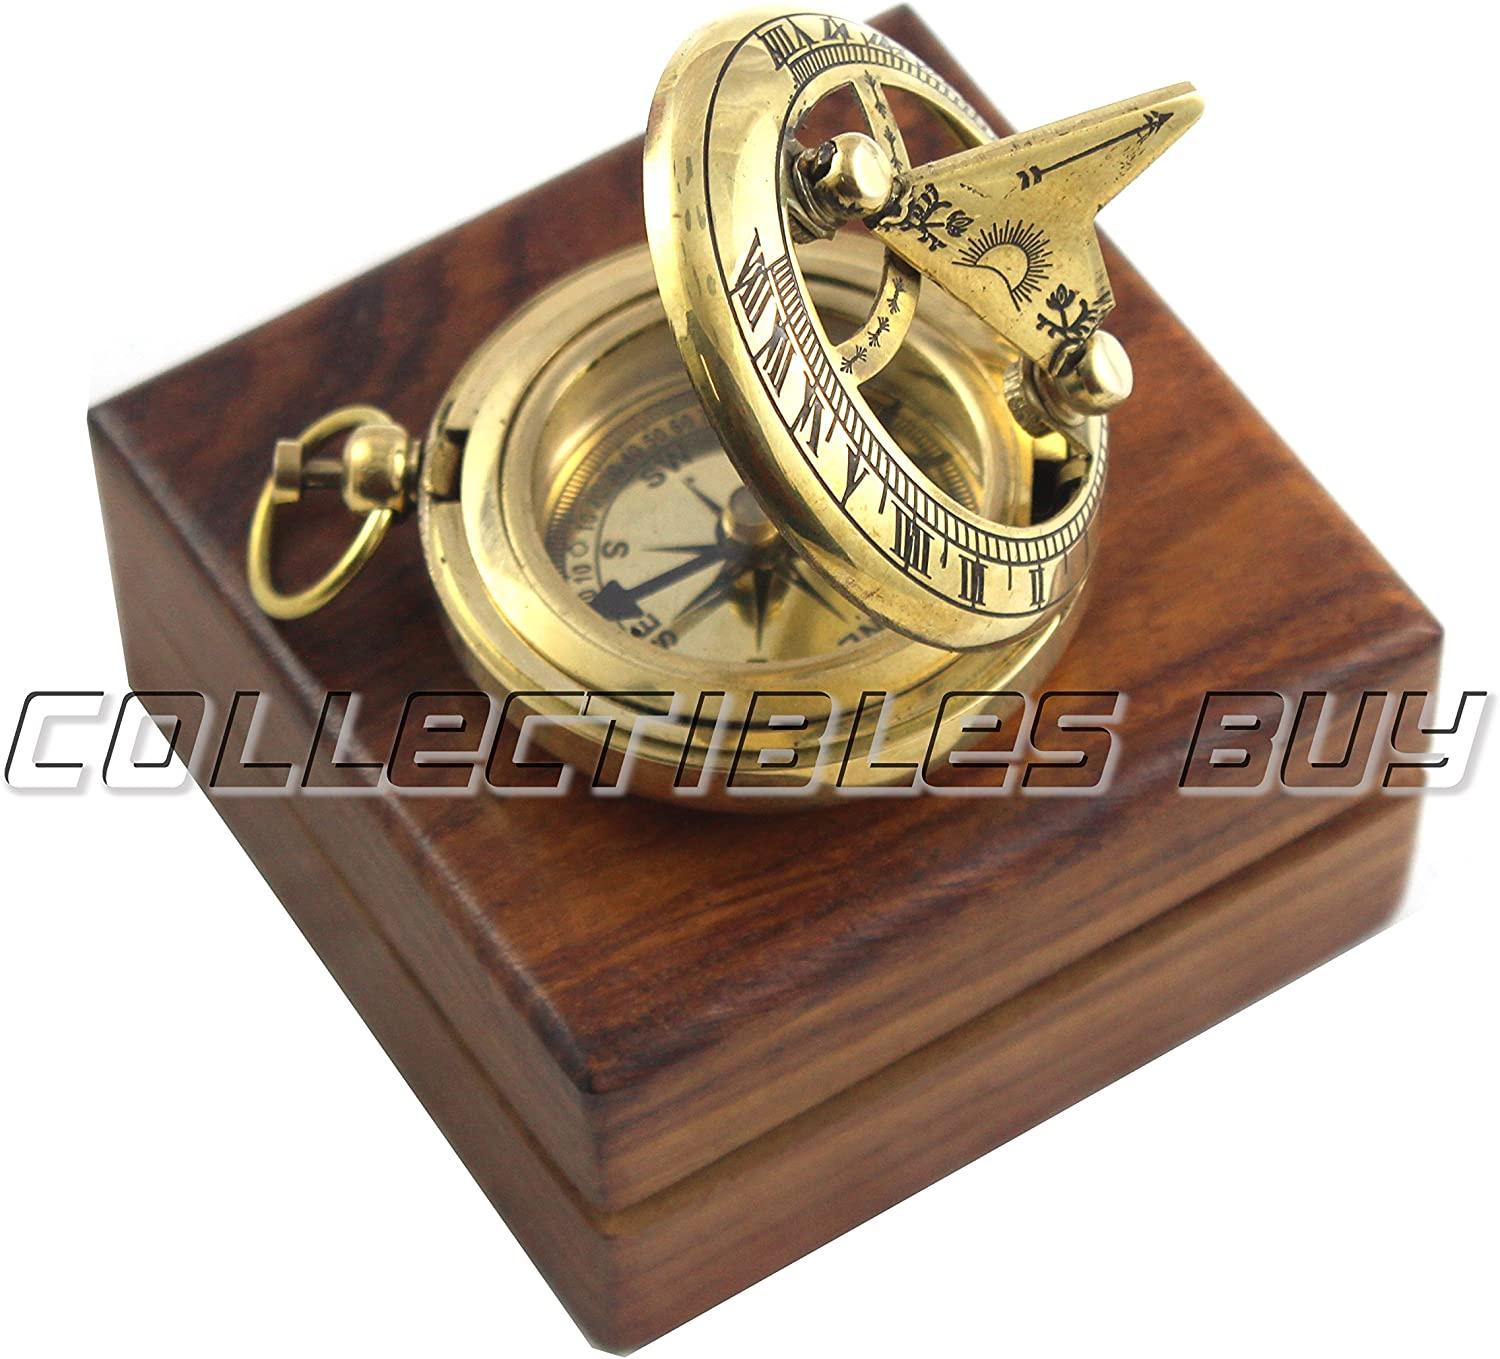 Marine Sundial Compass with Nautical Solid Wooden Box Vintage Brass Ship Navigate Device Nautical Gift Collection